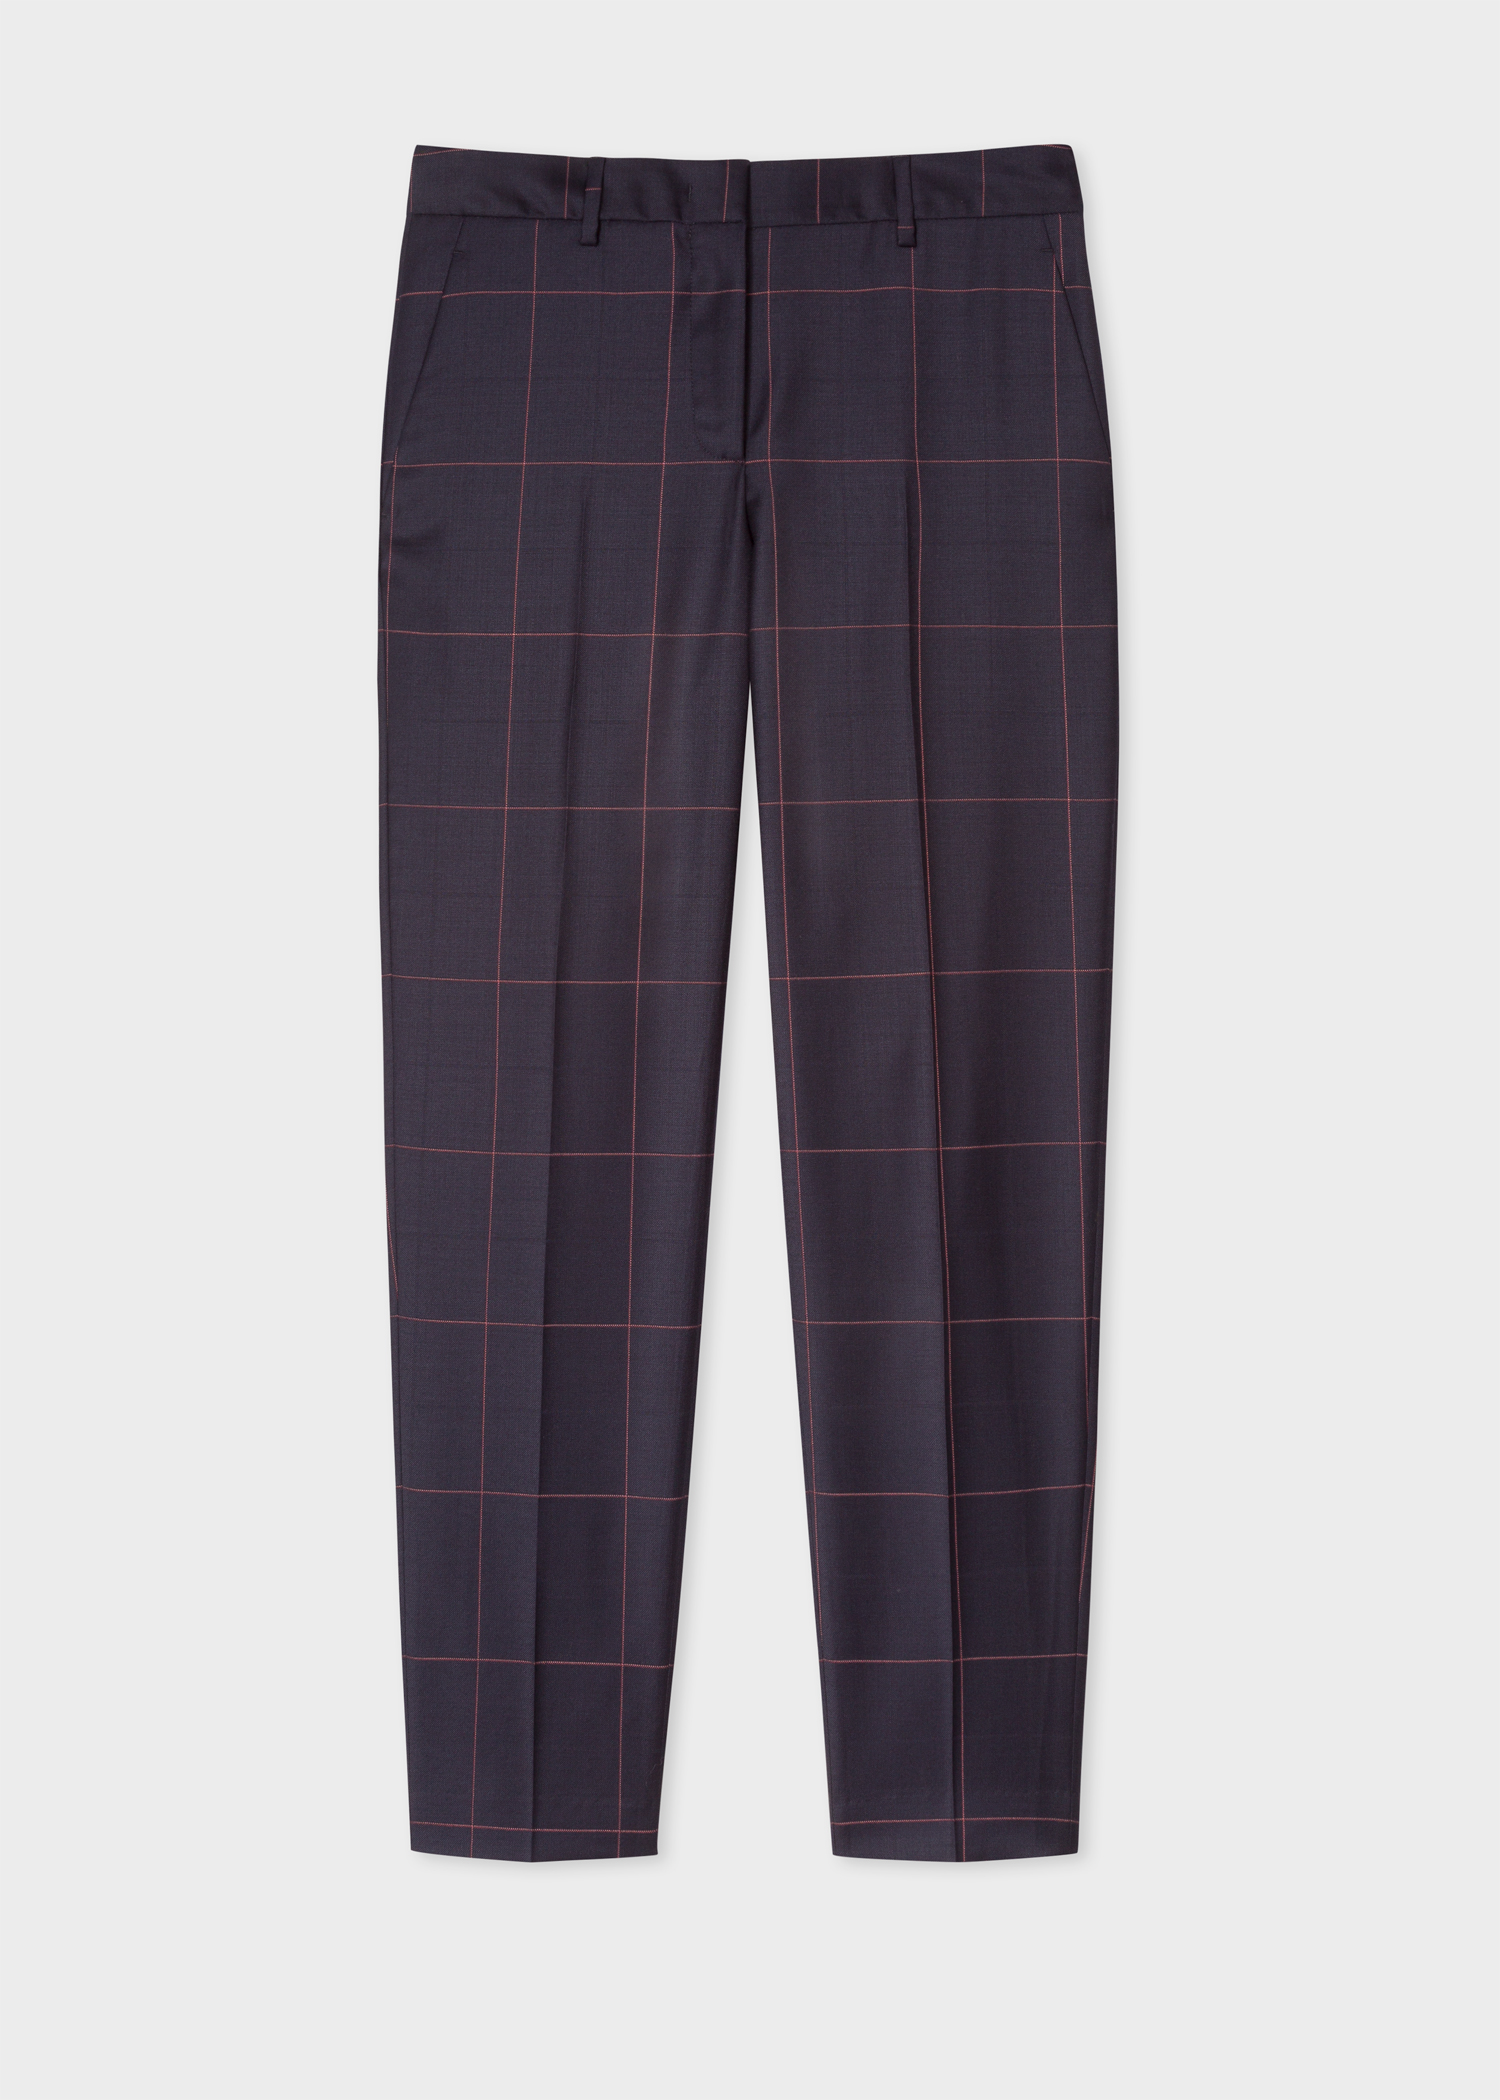 7823d5e7a2c2 Front View - Women's Classic-Fit Dark Navy Windowpane Wool Trousers Paul  Smith